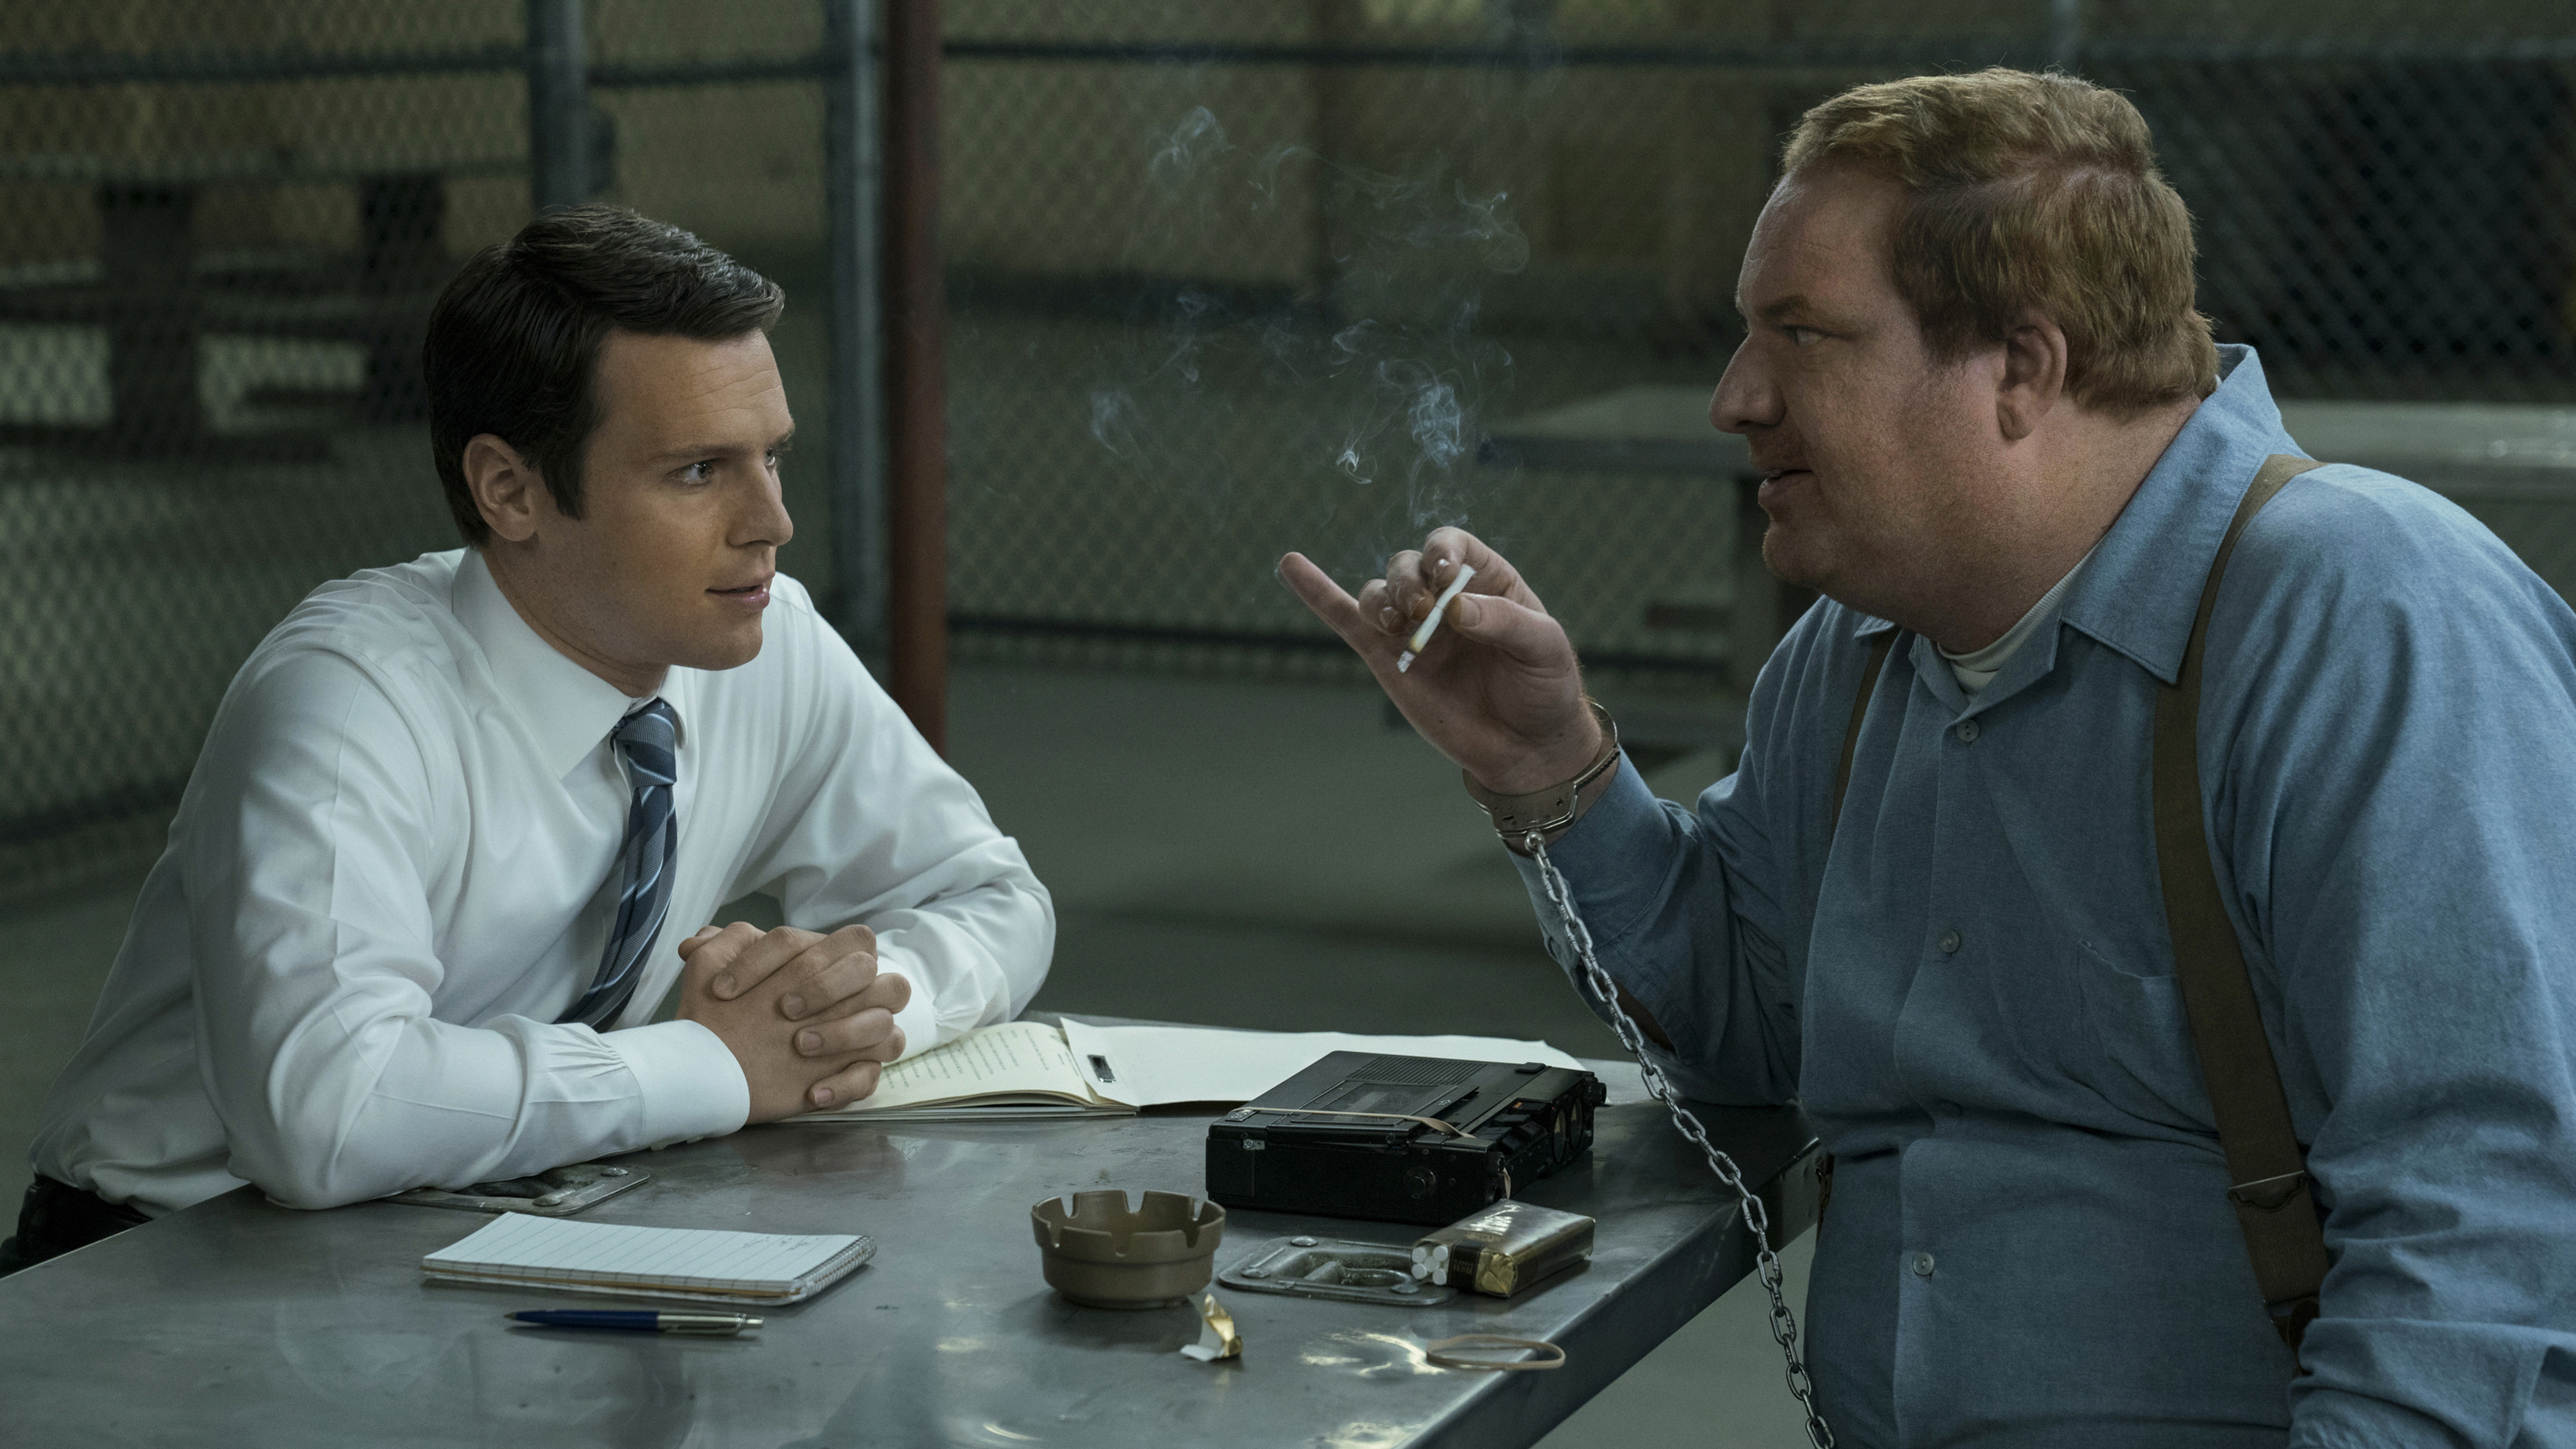 The Murderers of 'Mindhunter': What's True, What's Not?